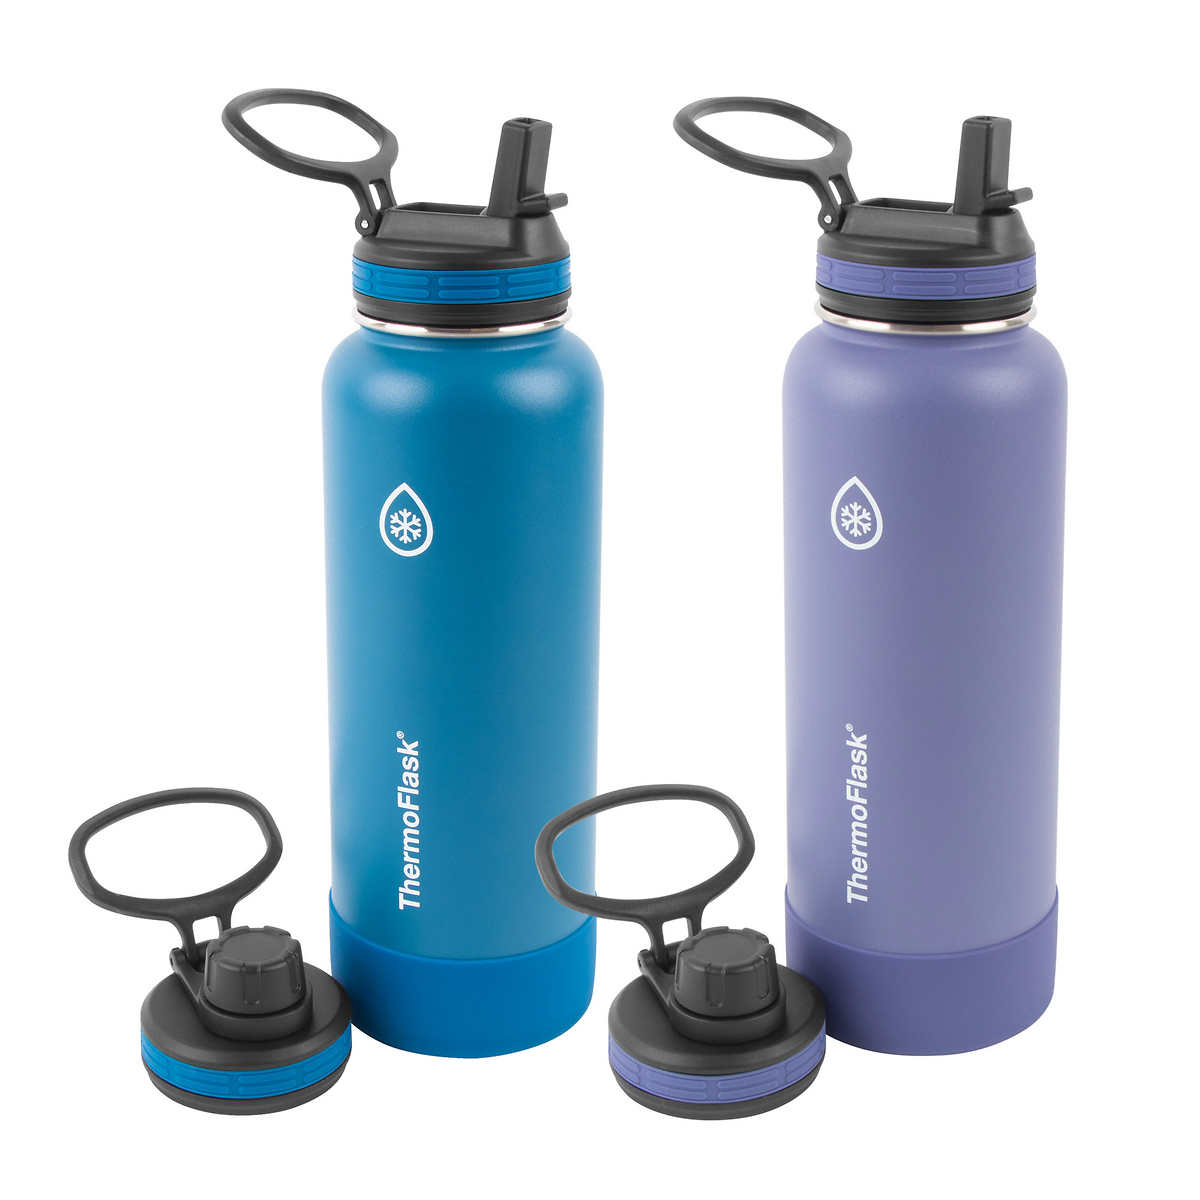 Thermoflask 40oz Insulated Stainless Steel Water Bottle 2 Pack